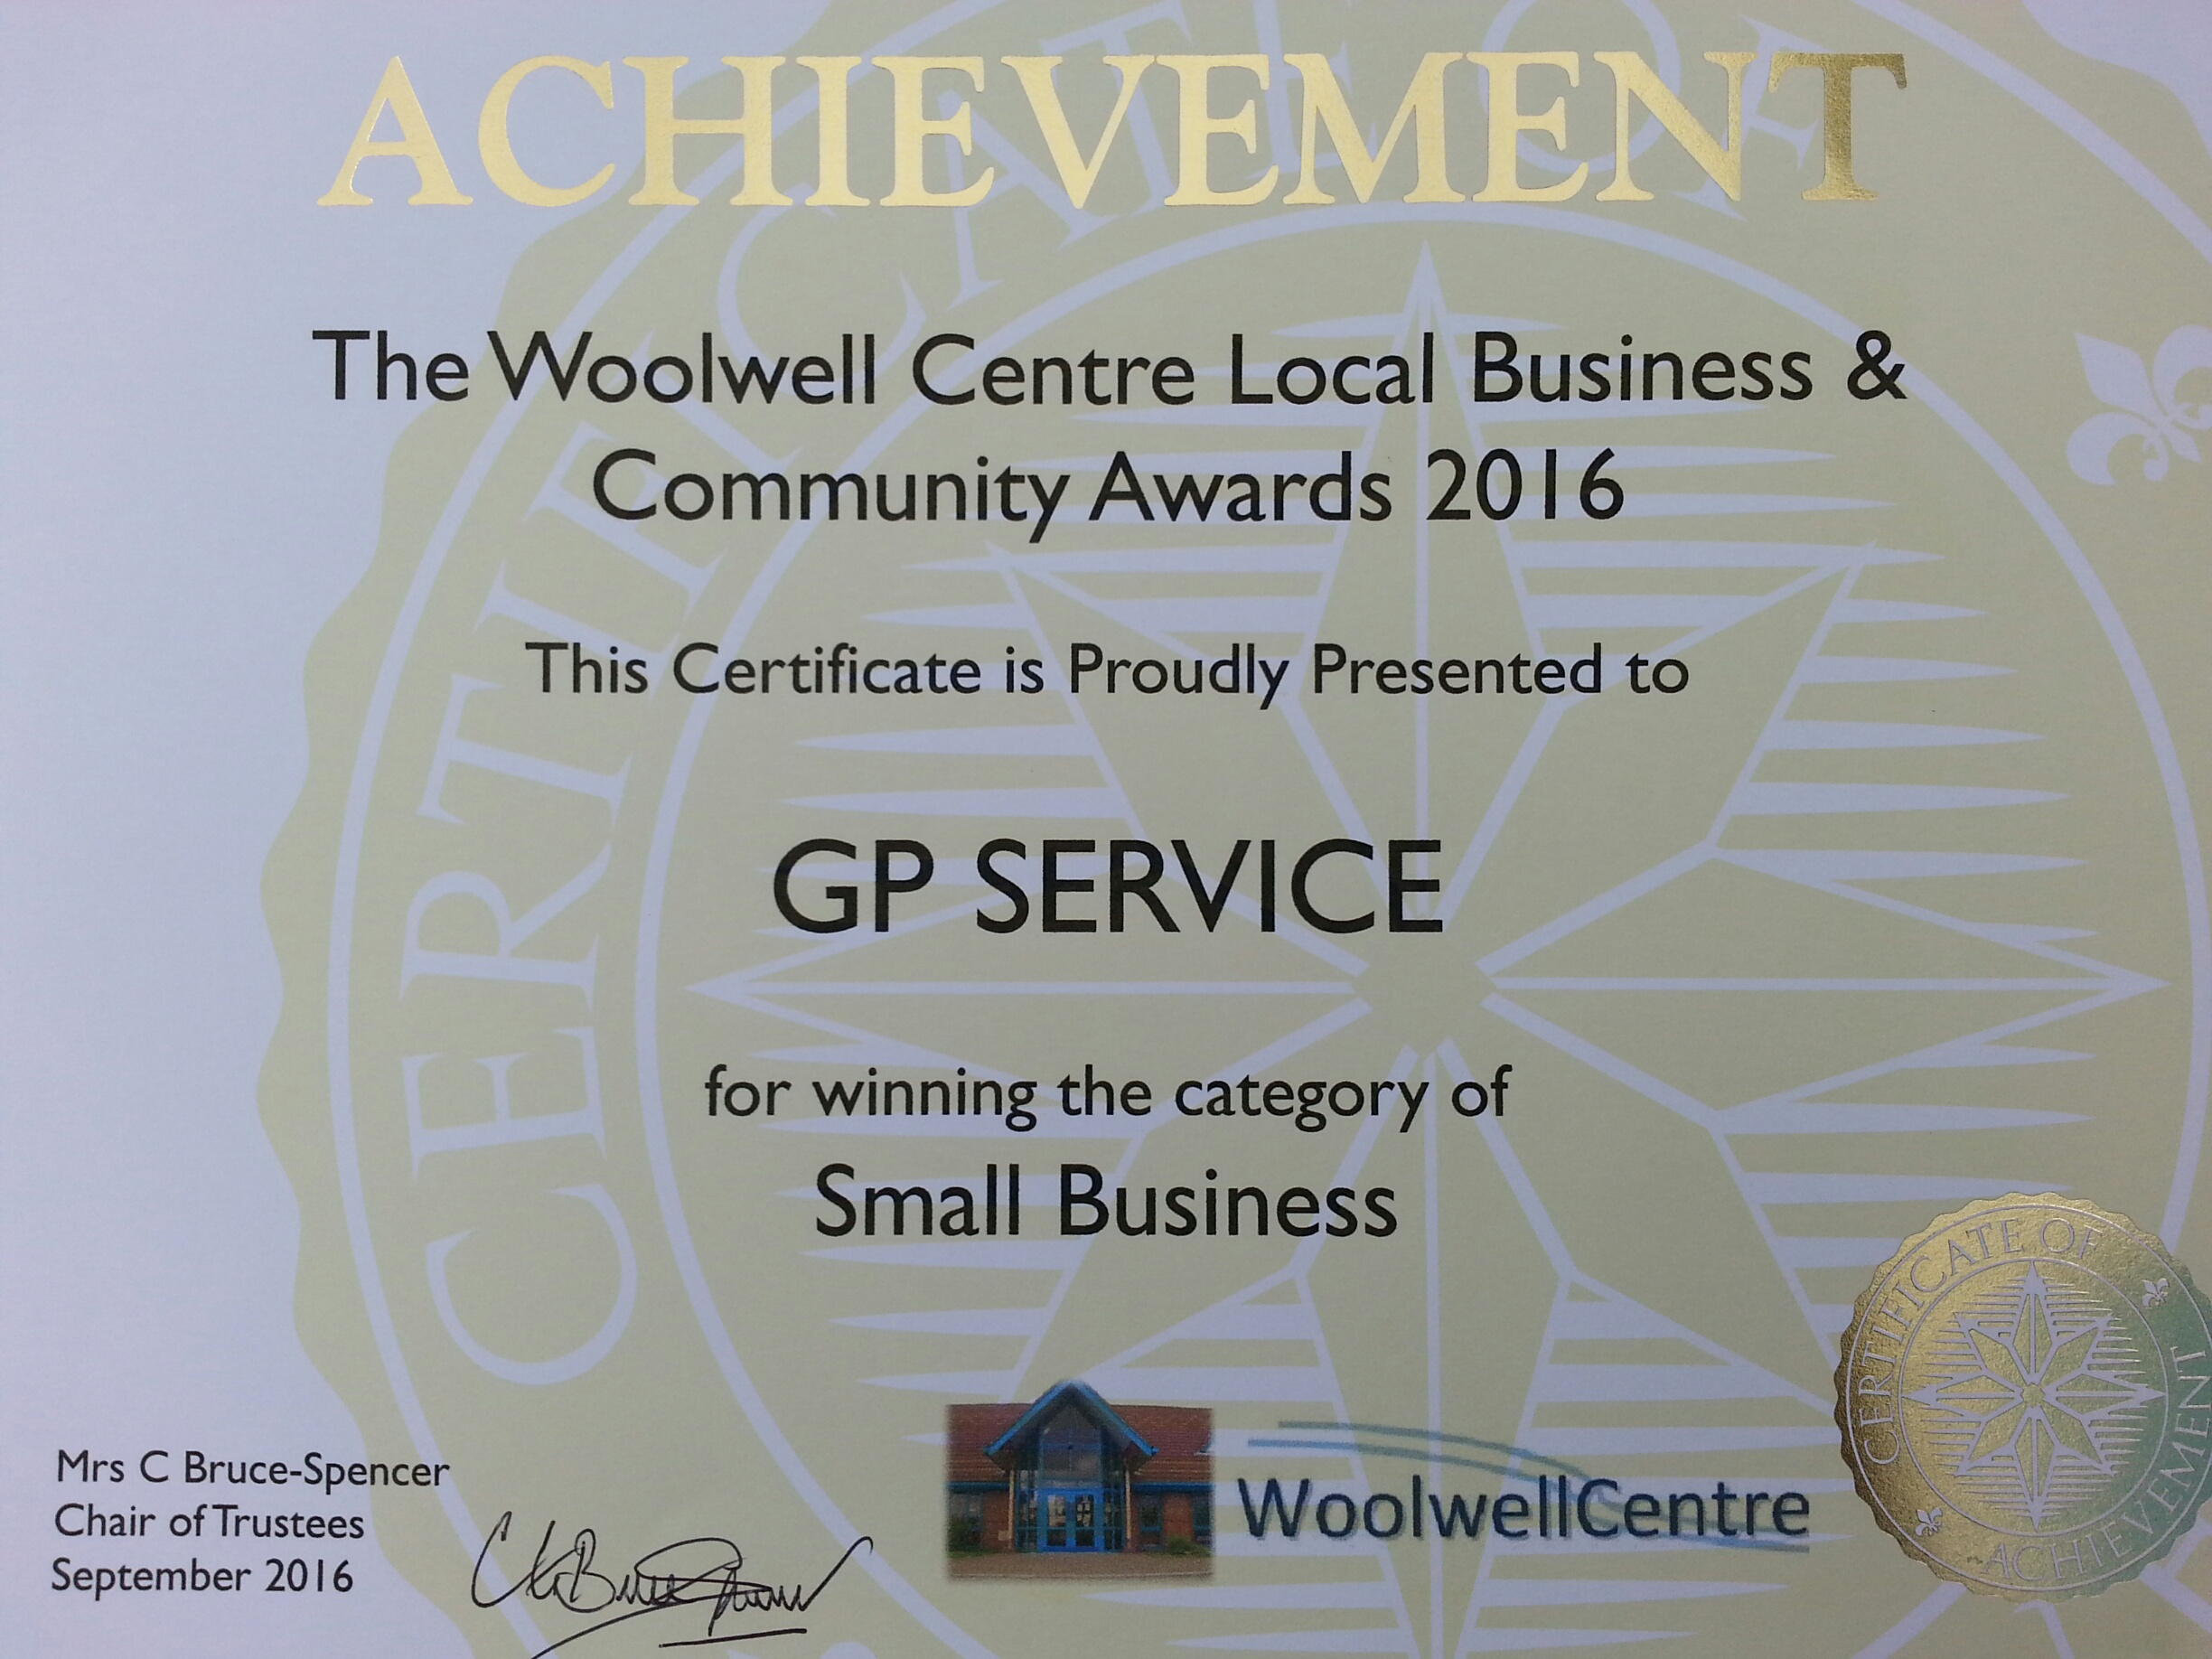 Our parent company G P Service won an award for best small business.